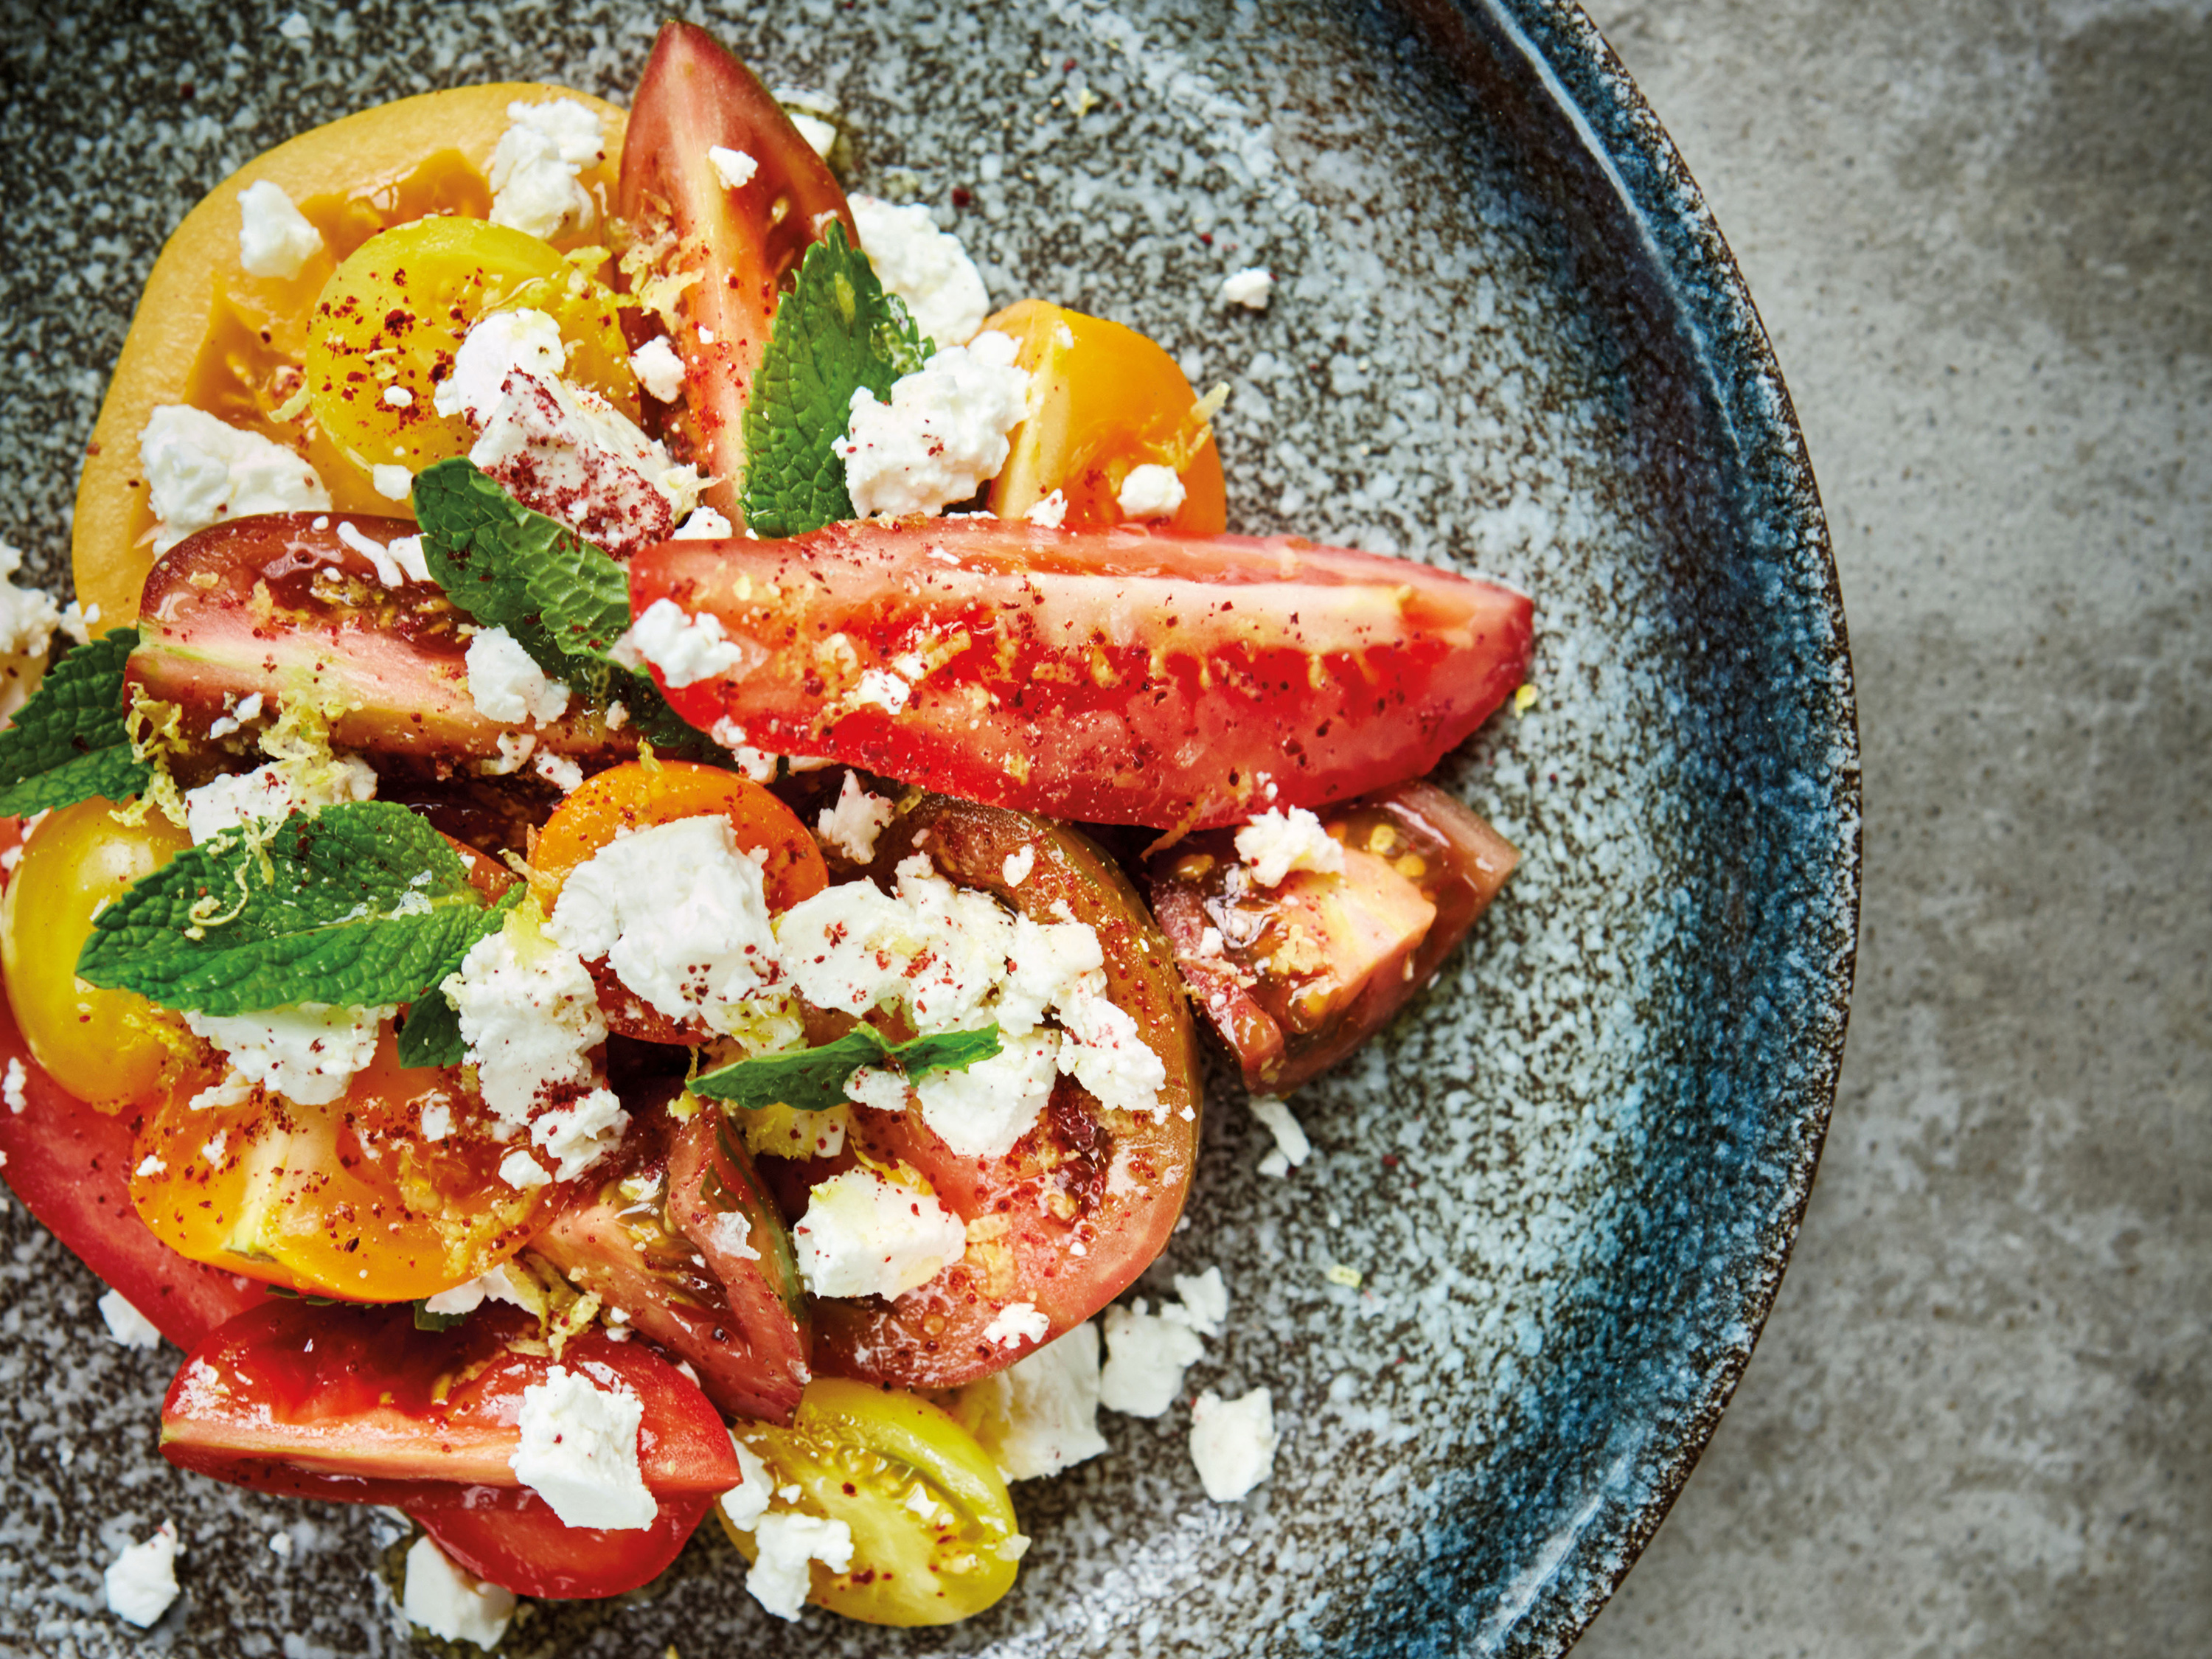 Make This Tomato Salad From The Restaurant That John And Chrissy Just Visited